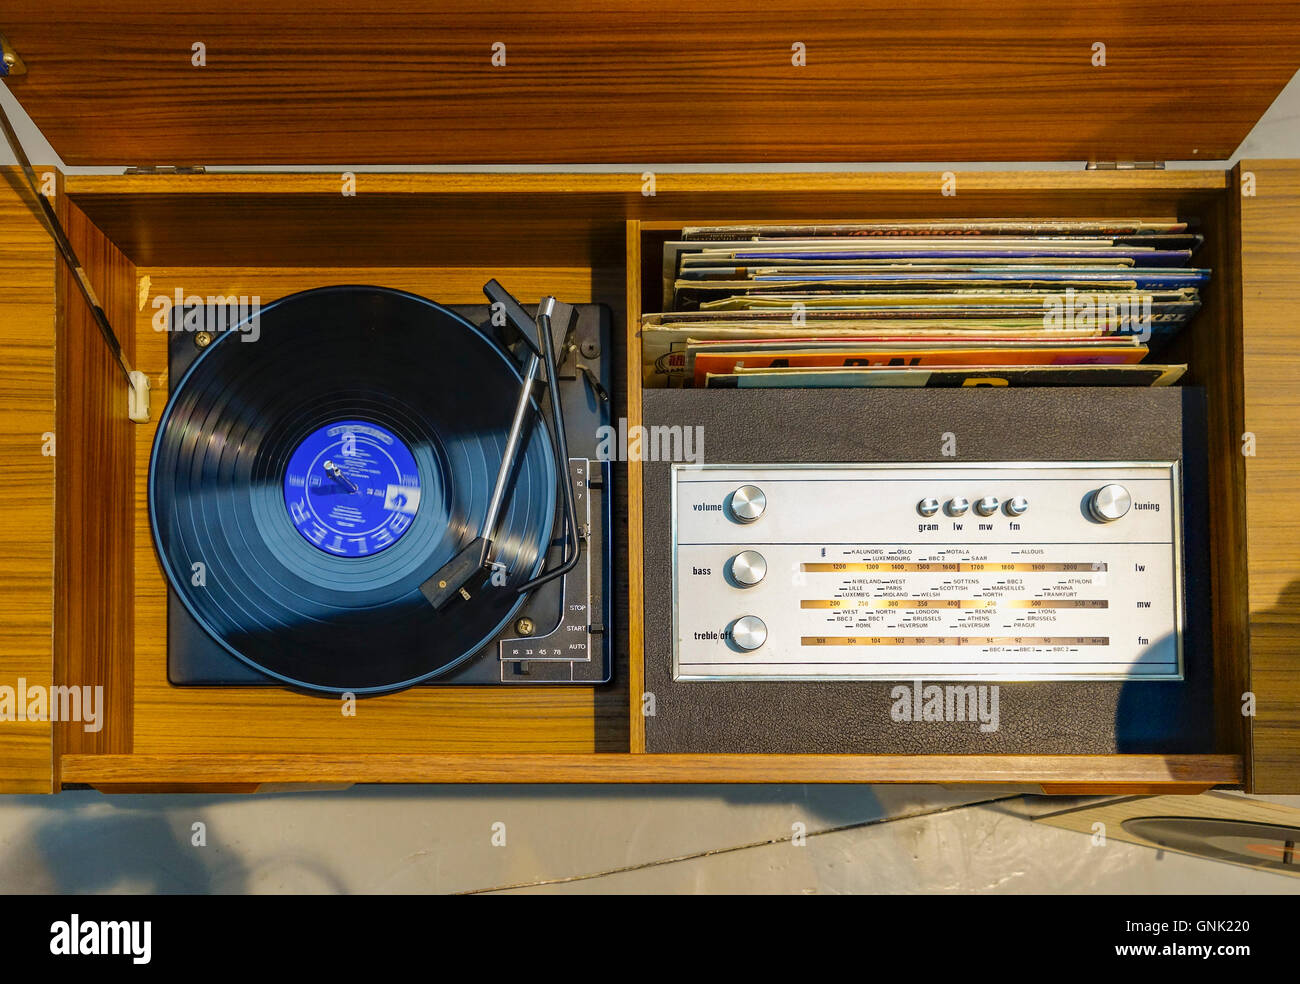 Vintage Retro Record Player Cabinet With Album And Radio Build In